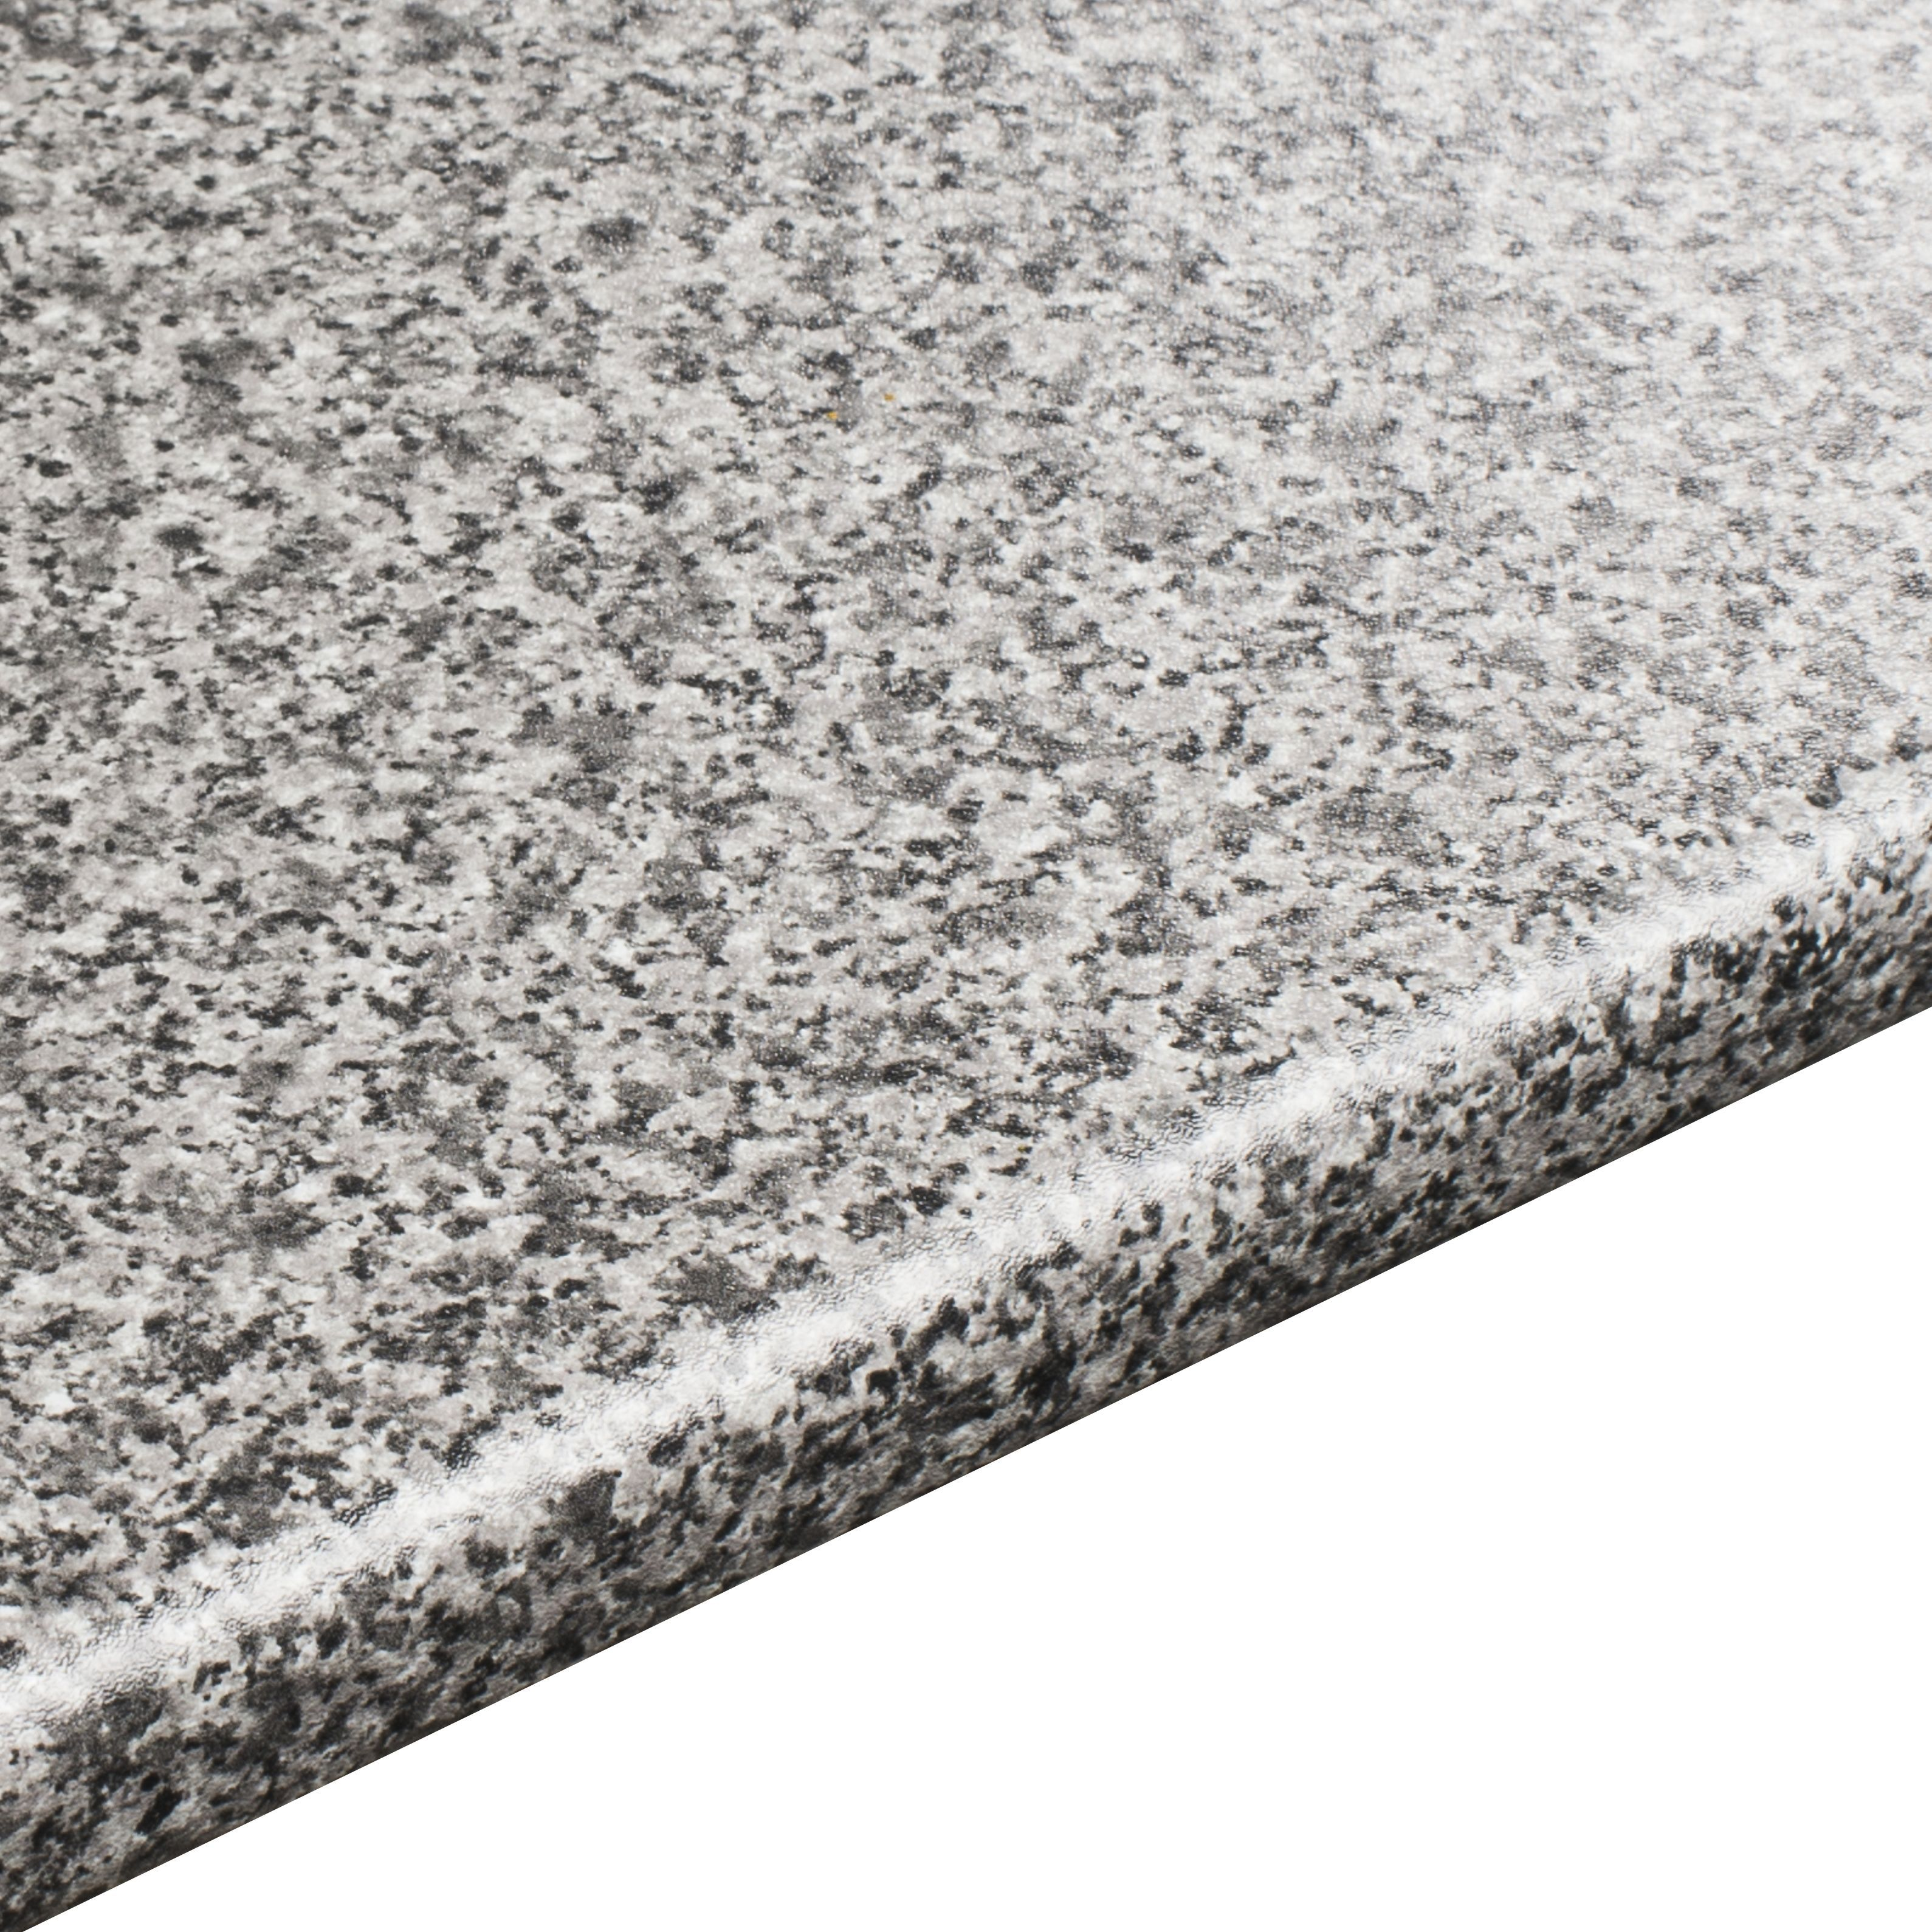 Grey Kitchen Marble Worktop: DIY At B&Q